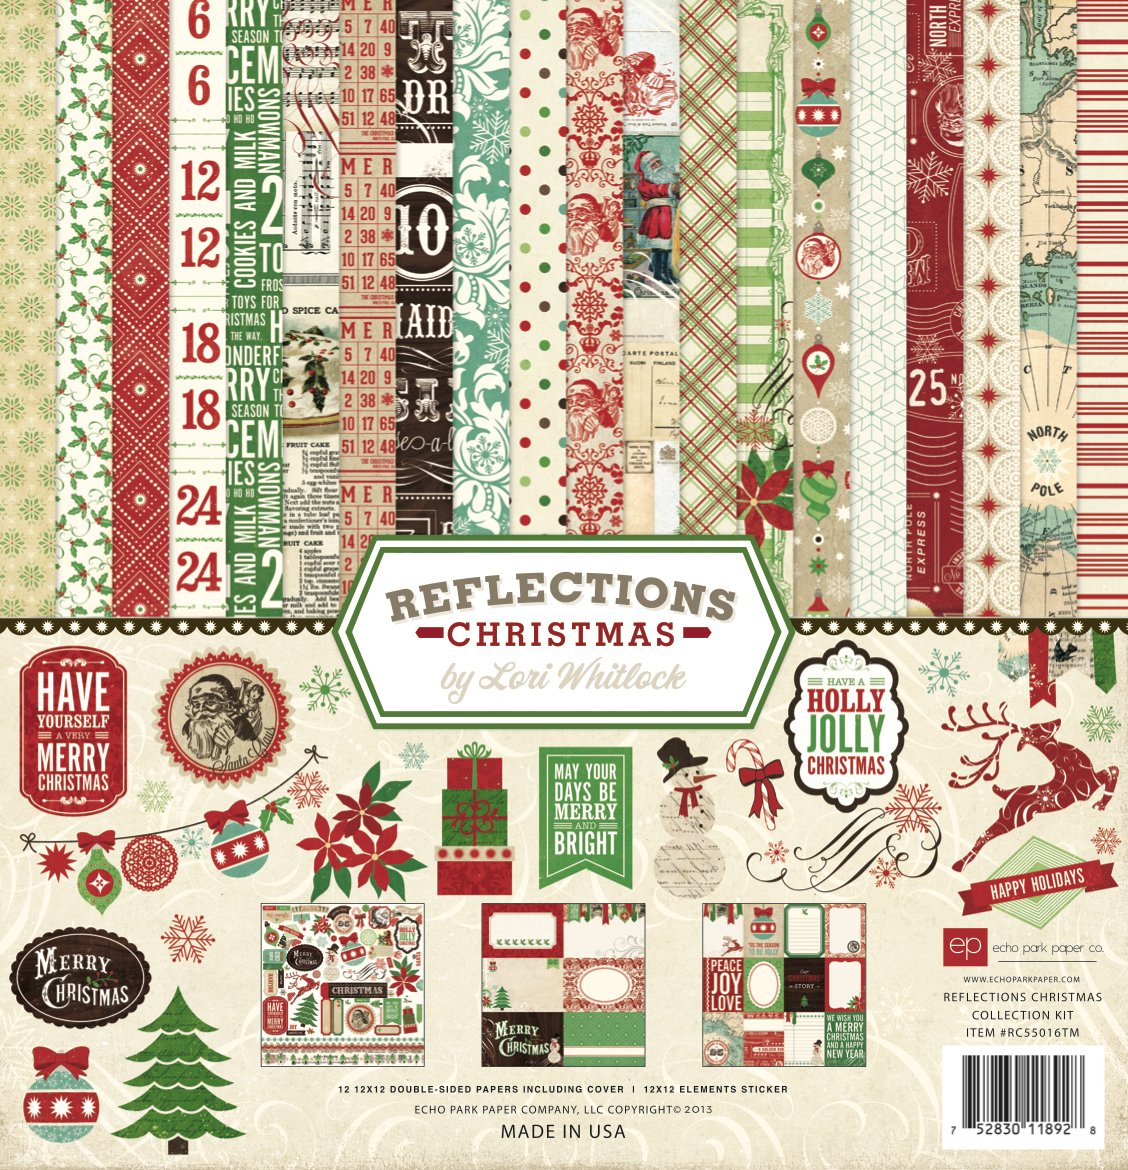 Echo Park Paper Company Reflections Christmas Scrapbooking Collection Kit RC55016TM